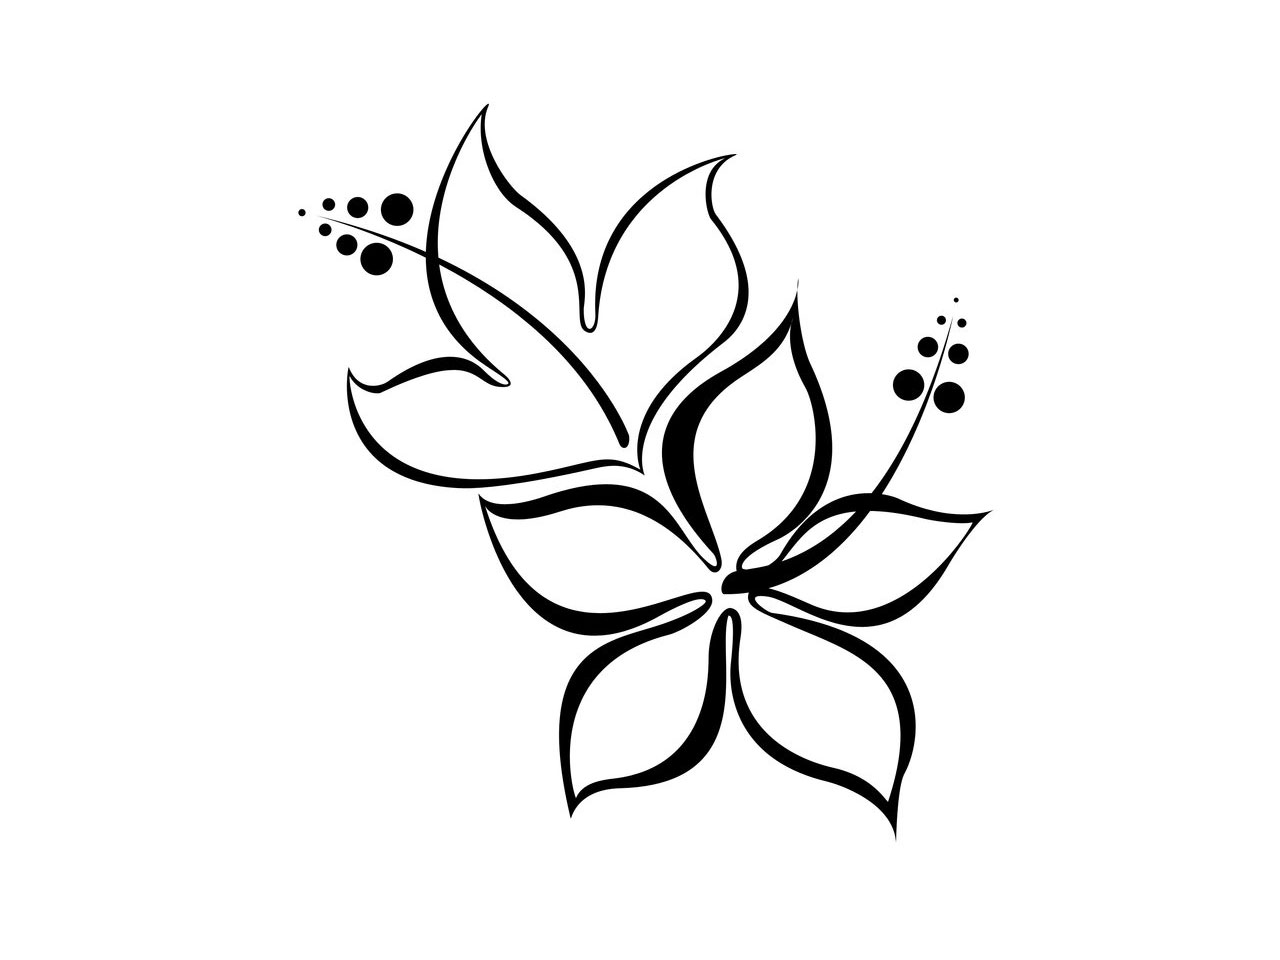 Free Pictures Of Flower Drawings, Download Free Clip Art, Free Clip.